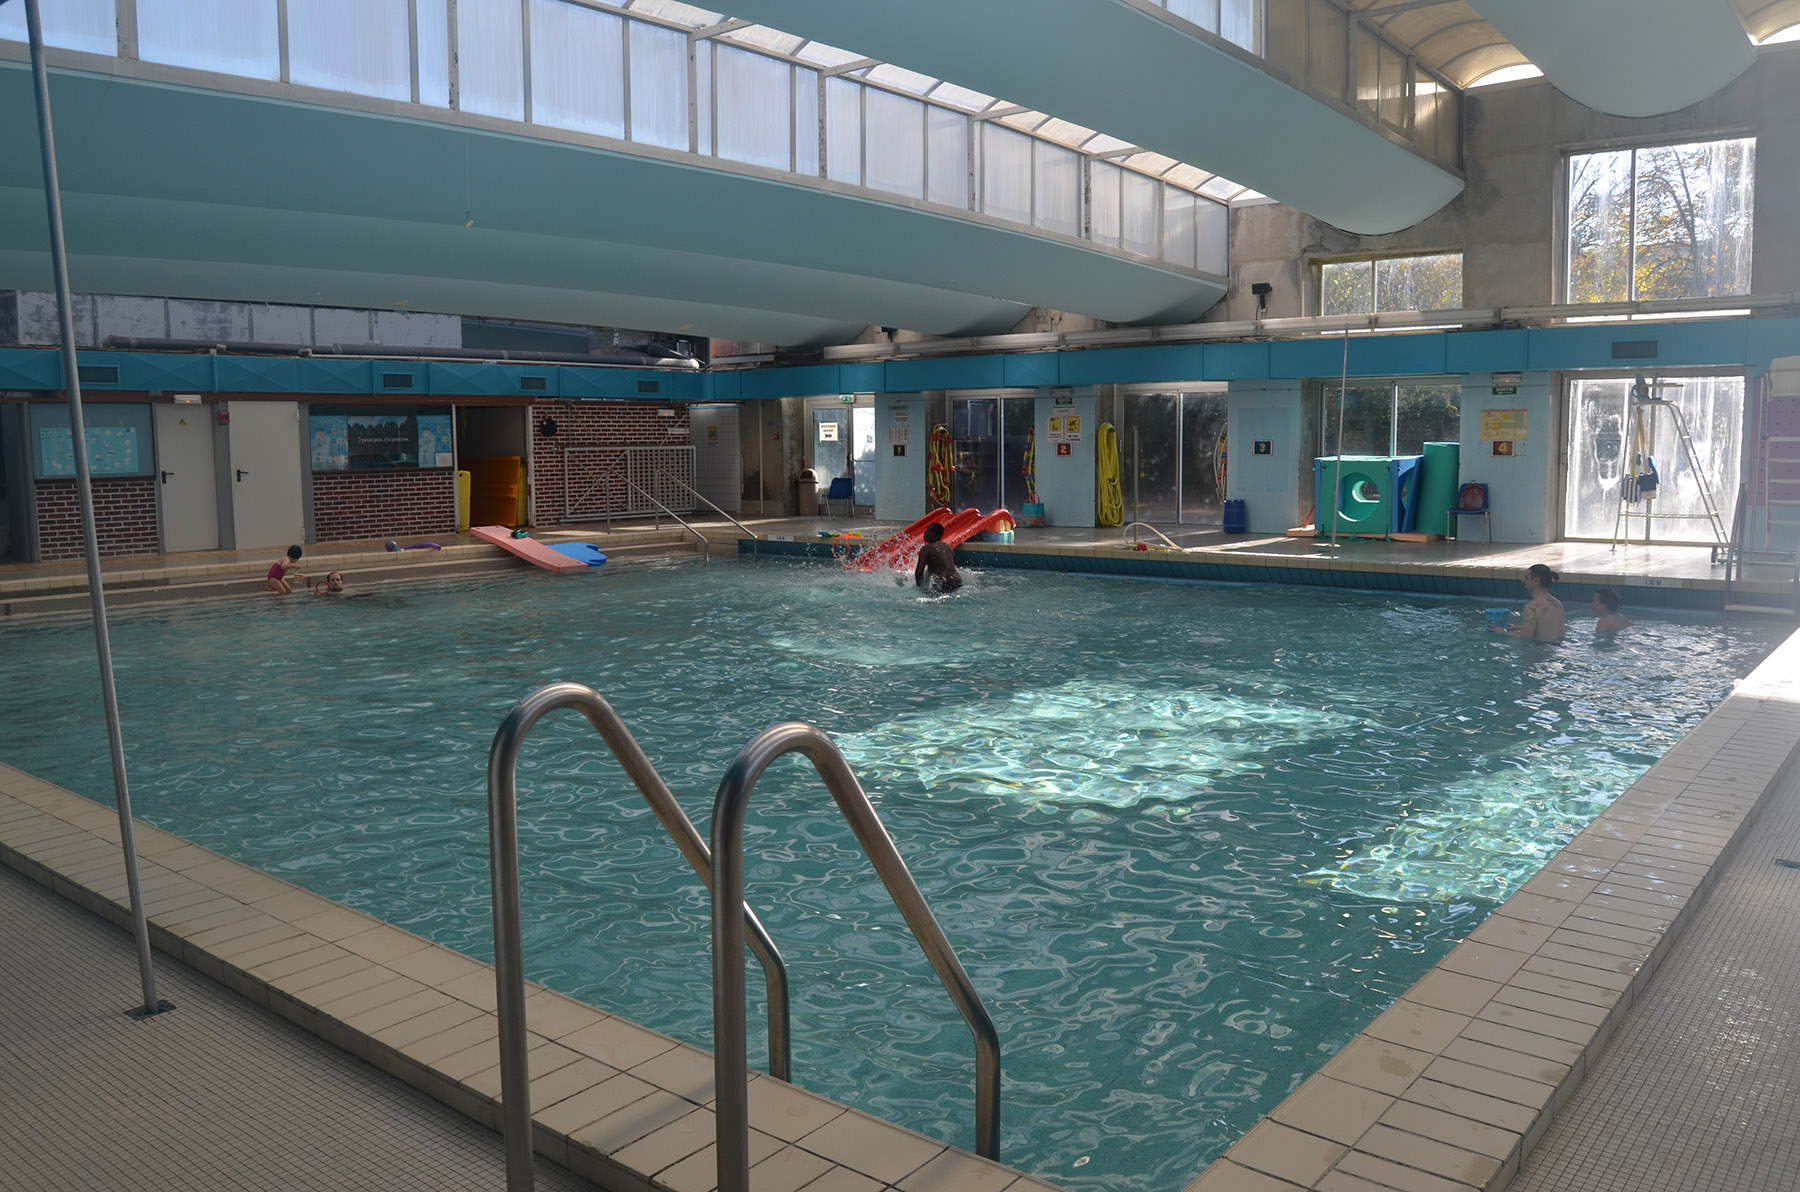 Horaires Normaux avec Piscine Coulommiers Horaires